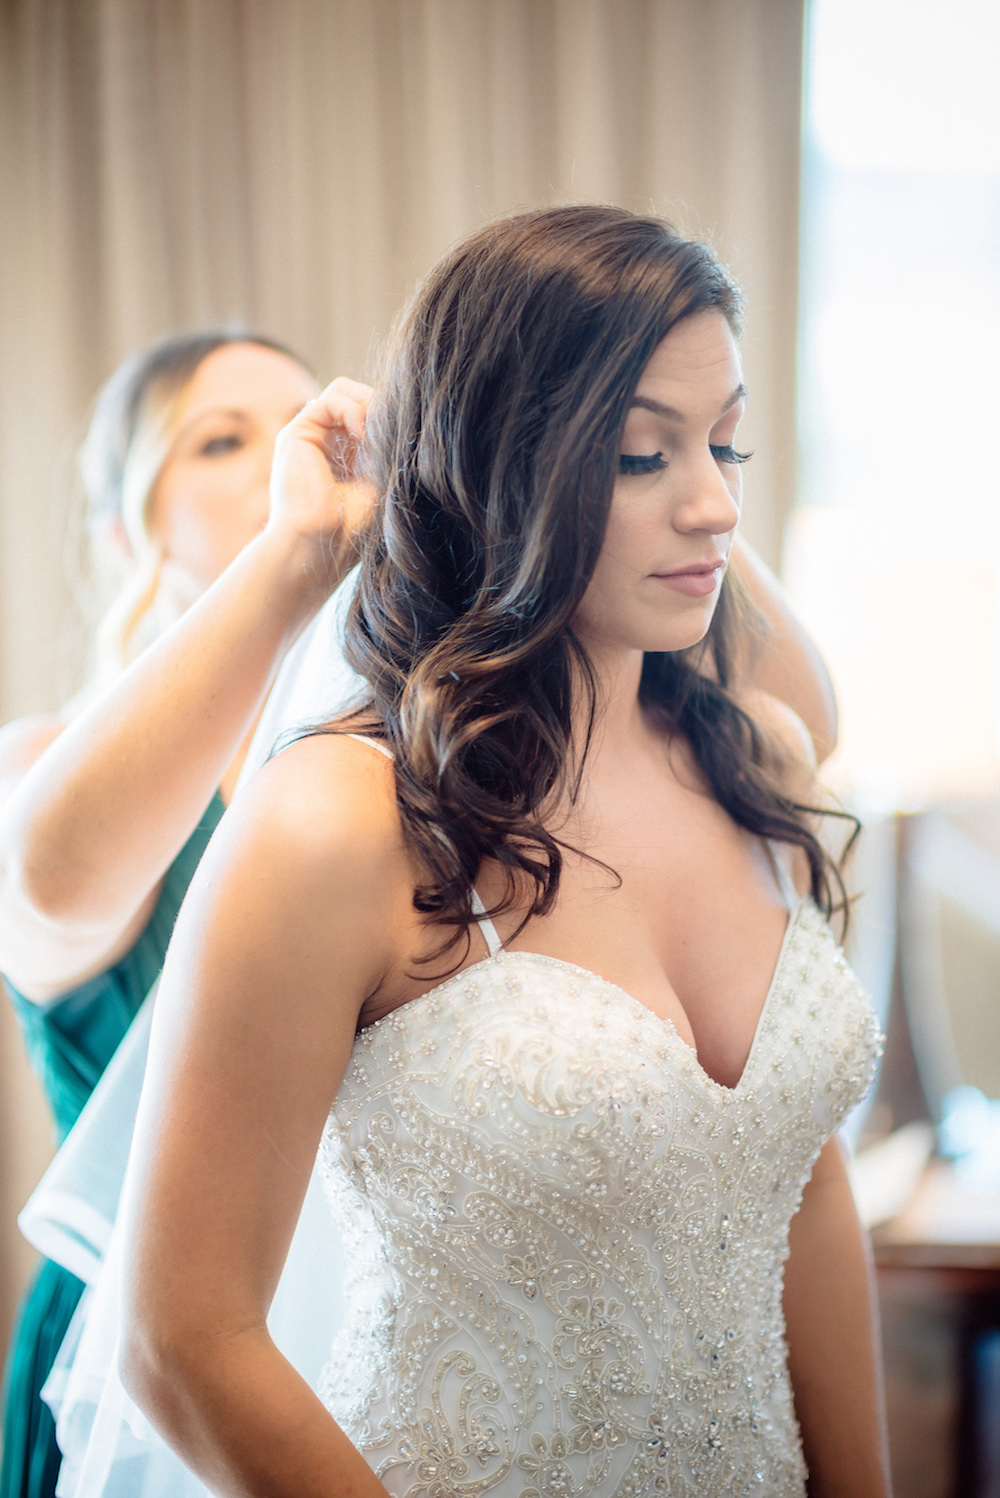 Philadelphia Weddings by Matt Steeves Photography 1.jpg